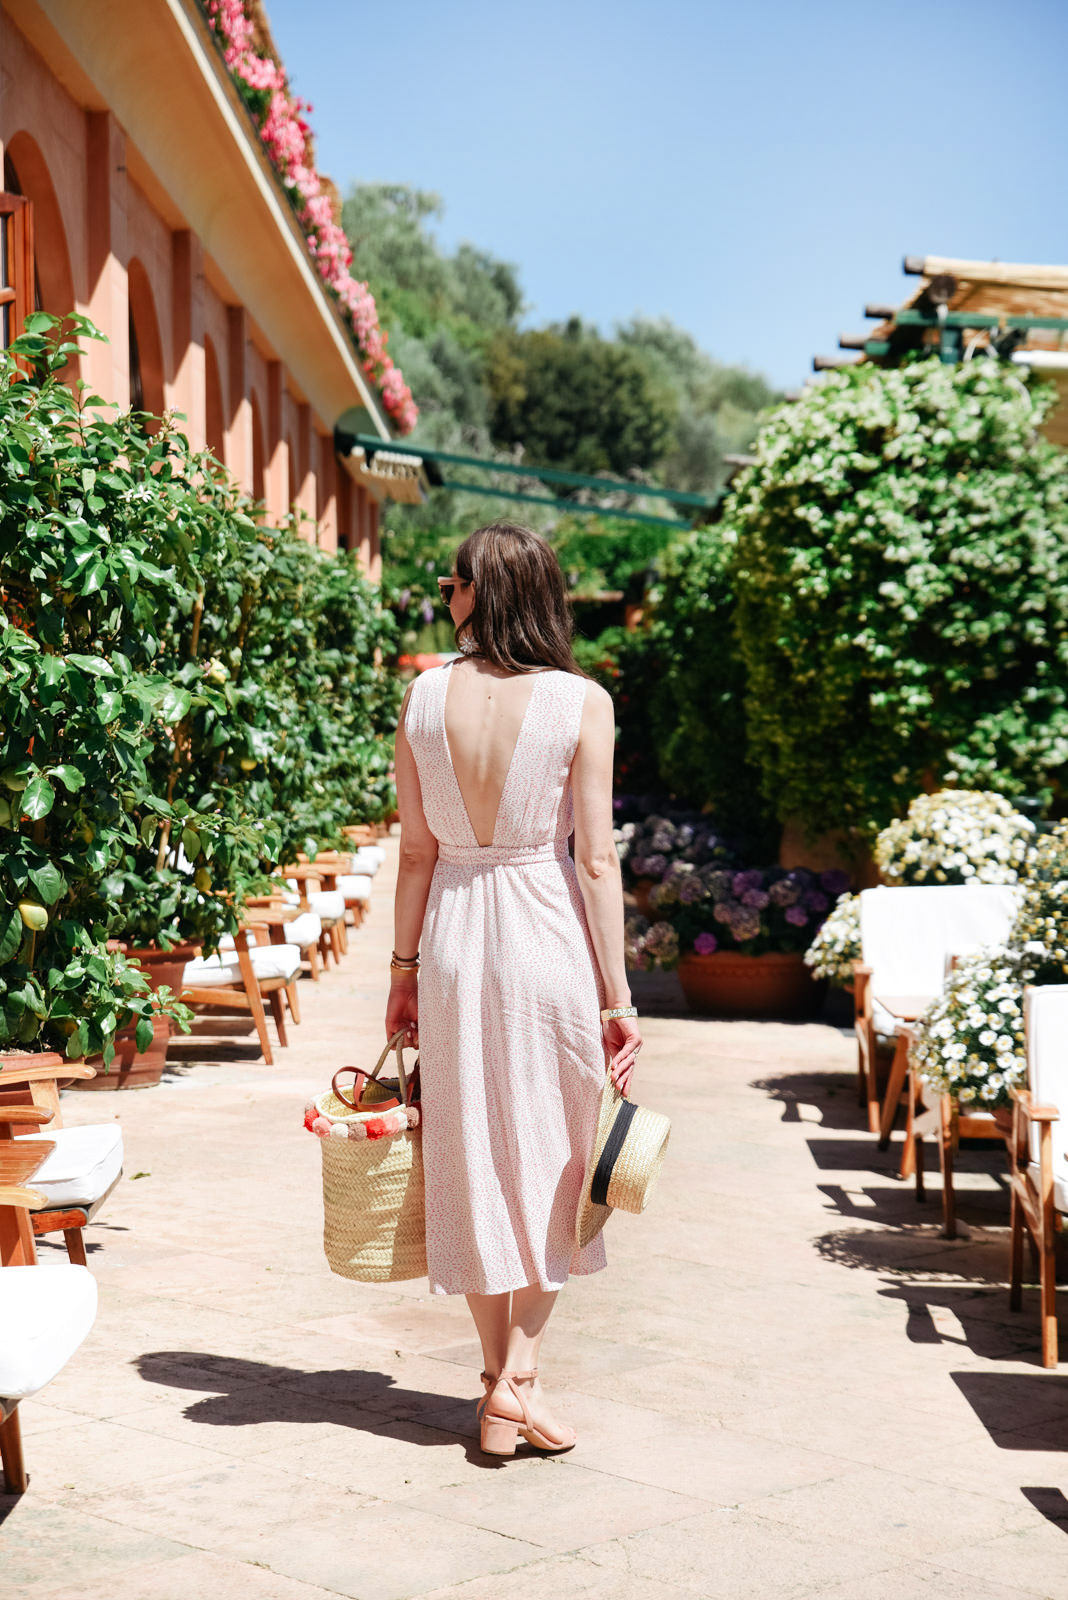 Blog-Mode-And-The-City-Lifestyle-Belmond-Hotel copie